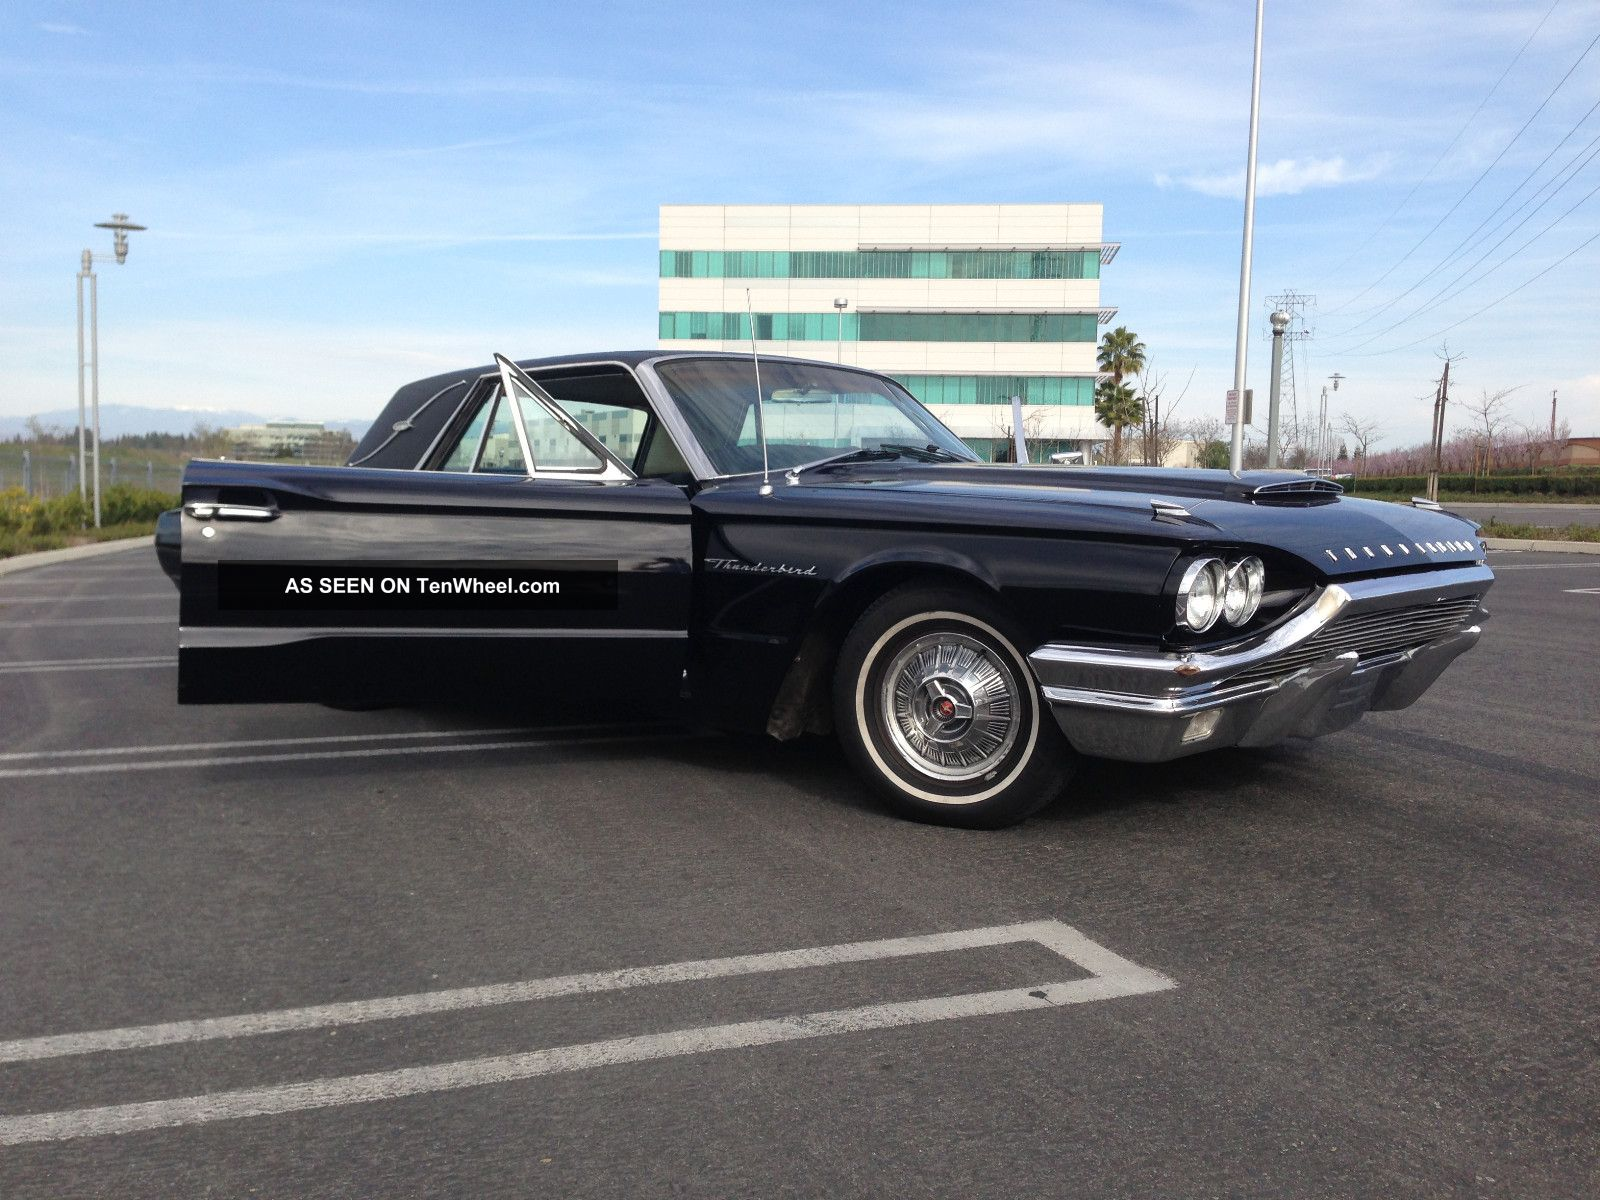 1964 Ford Thunderbird Landau Sport Coupe - Thunderbird photoFord Thunderbird 1964